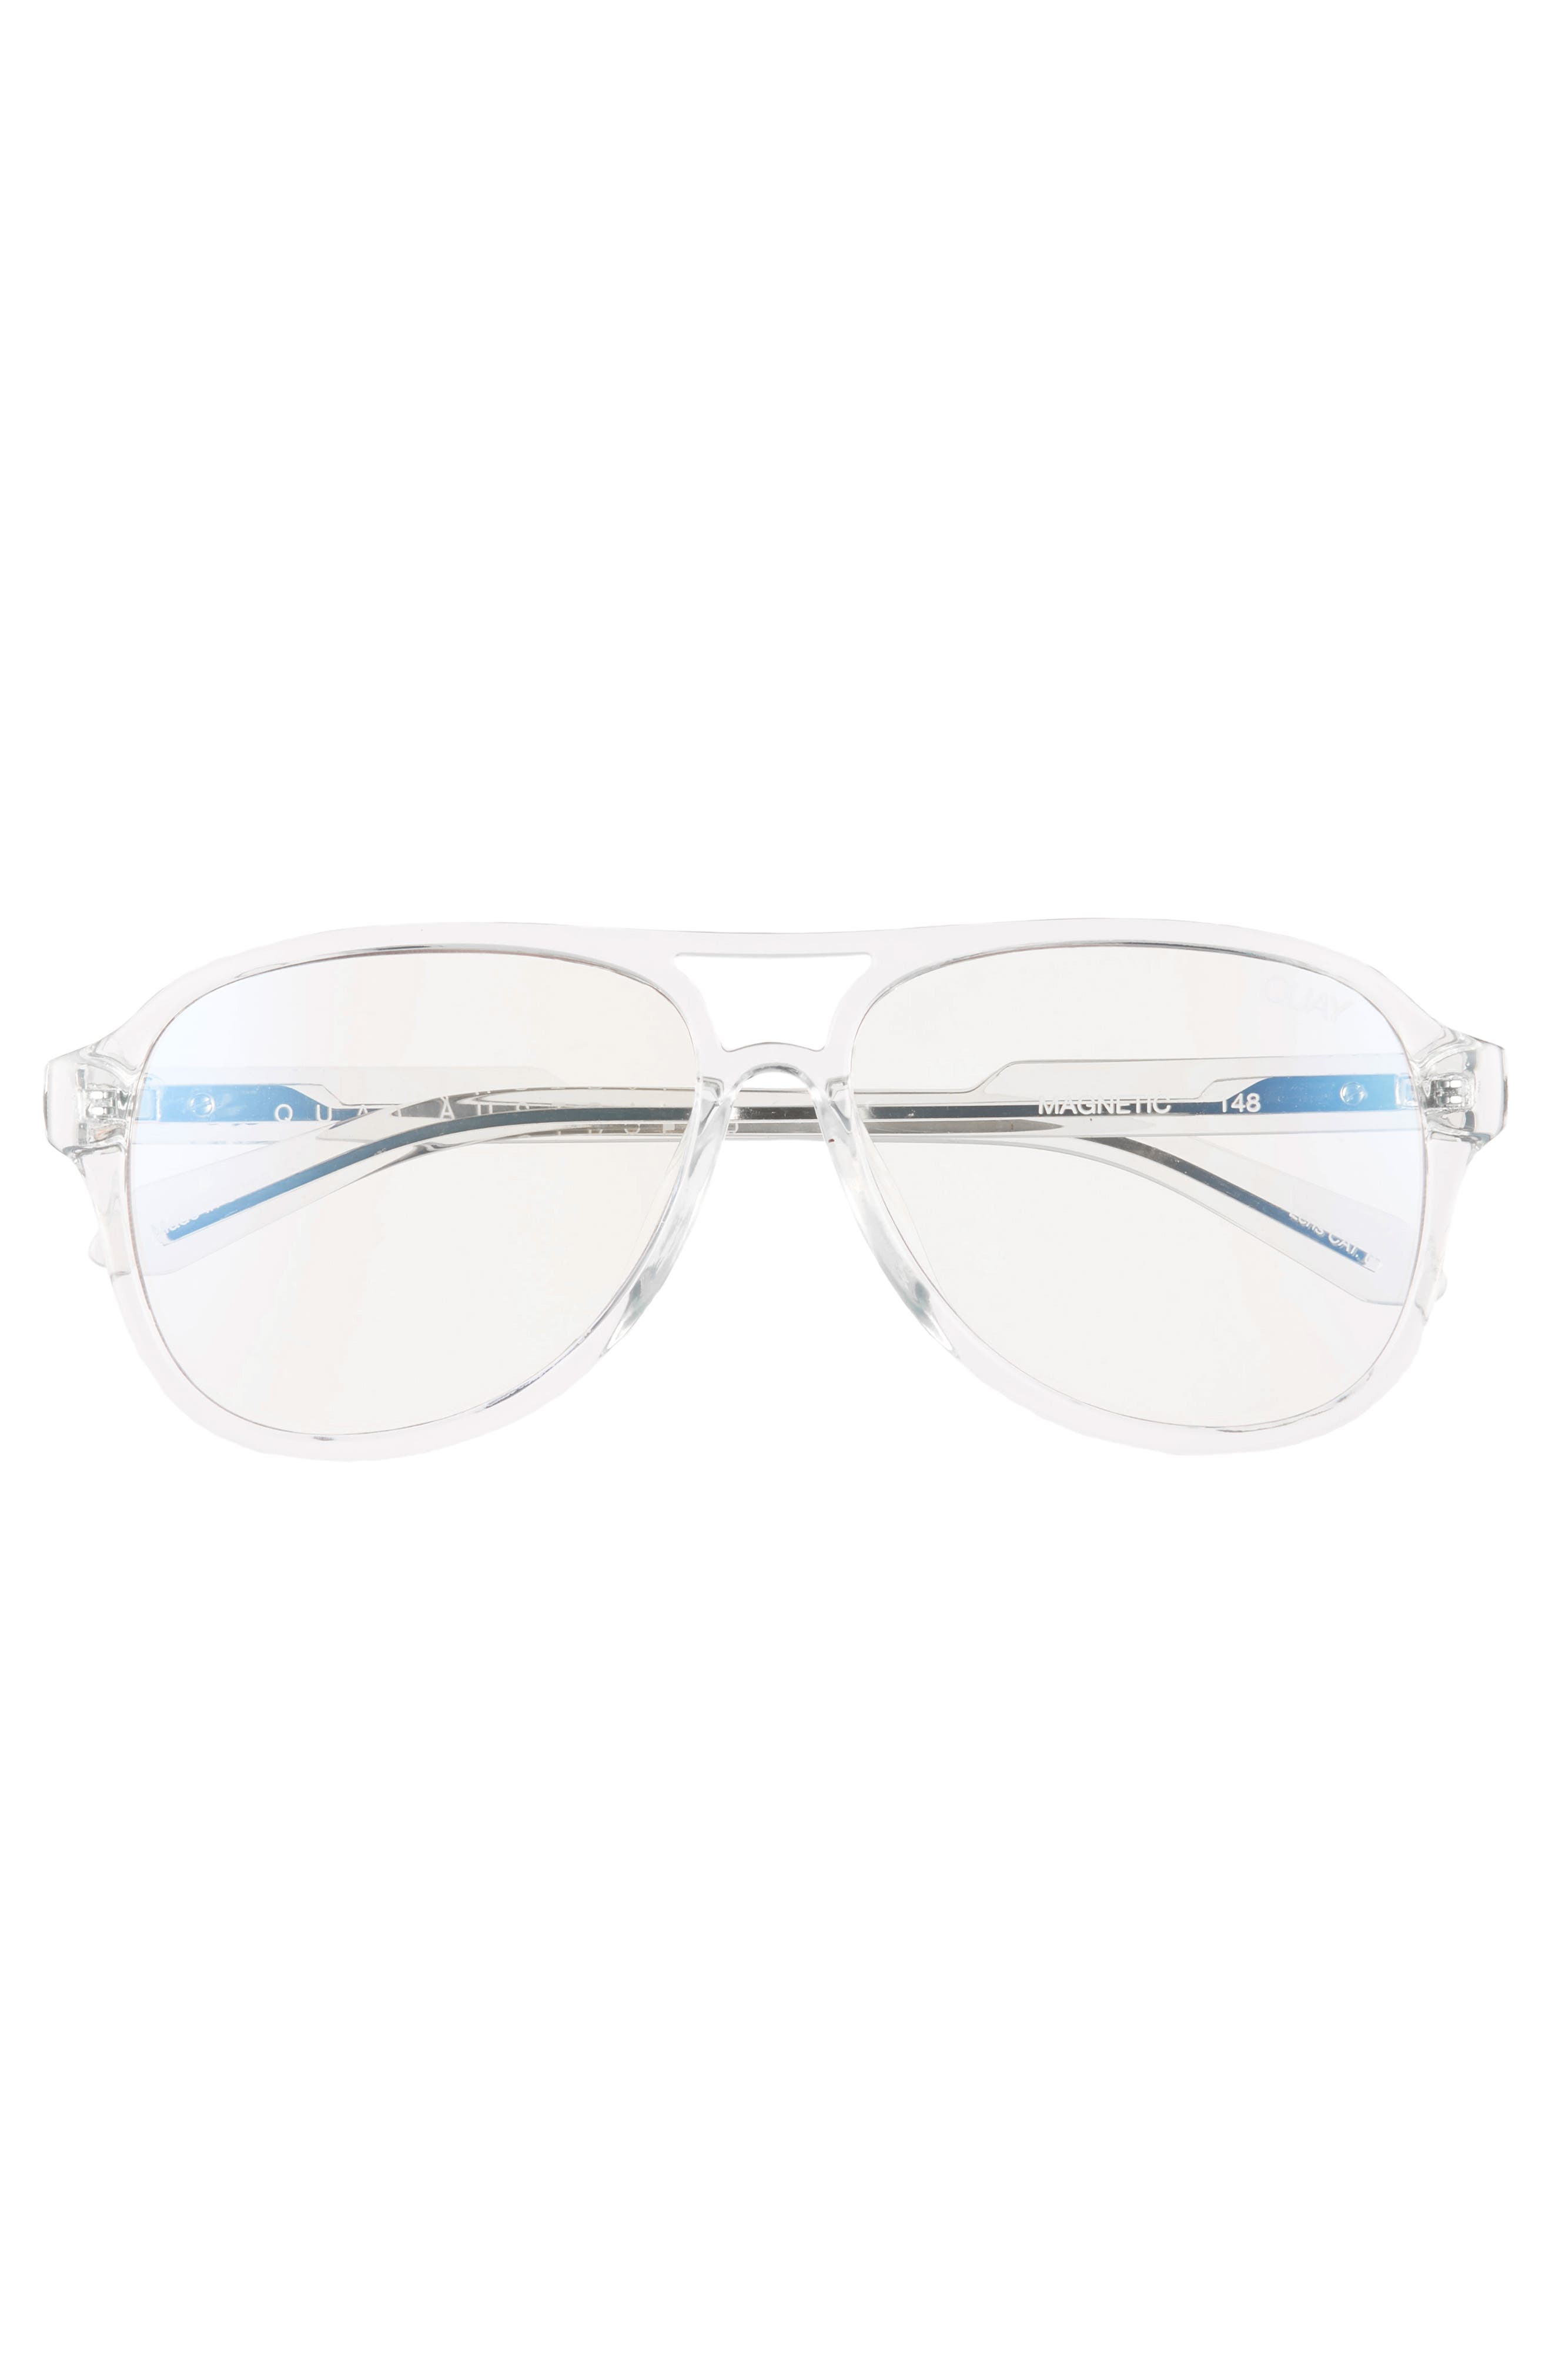 Magnetic 55mm Aviator Fashion Glasses,                             Alternate thumbnail 3, color,                             CLEAR/ CLEAR